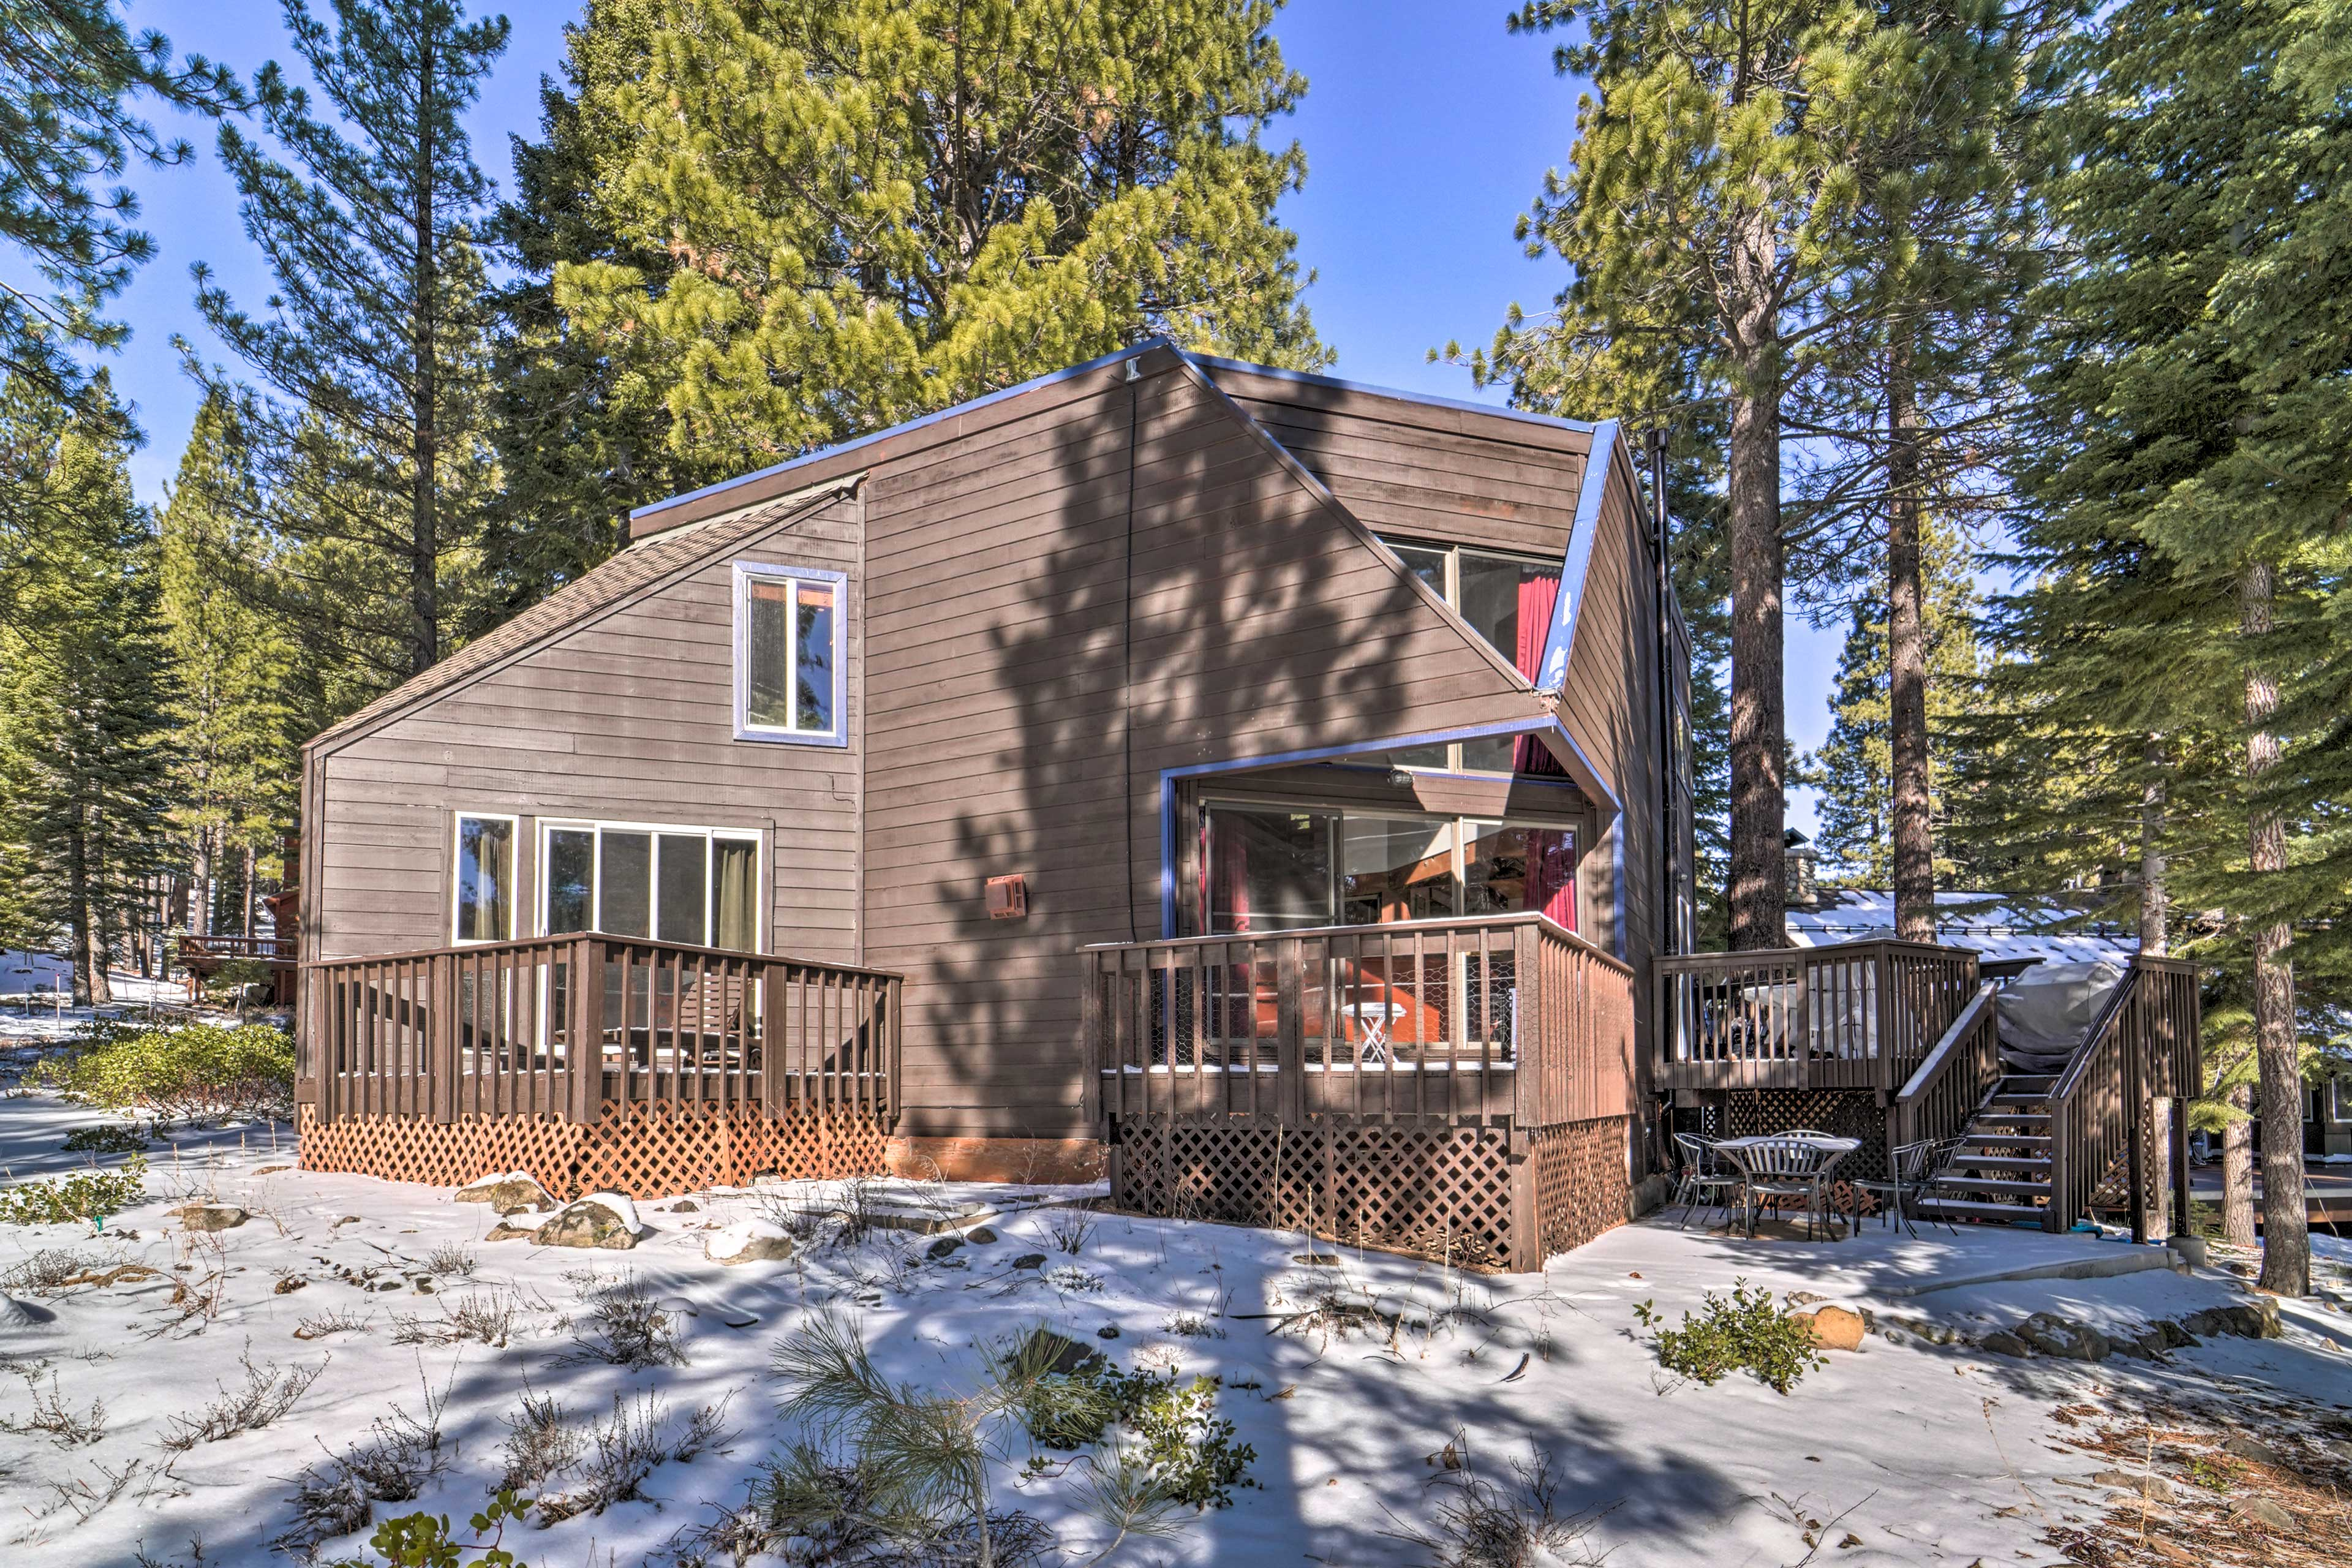 Truckee Vacation Rental | 4BR | 2BA | 1,500 Sq Ft | 2 Stories